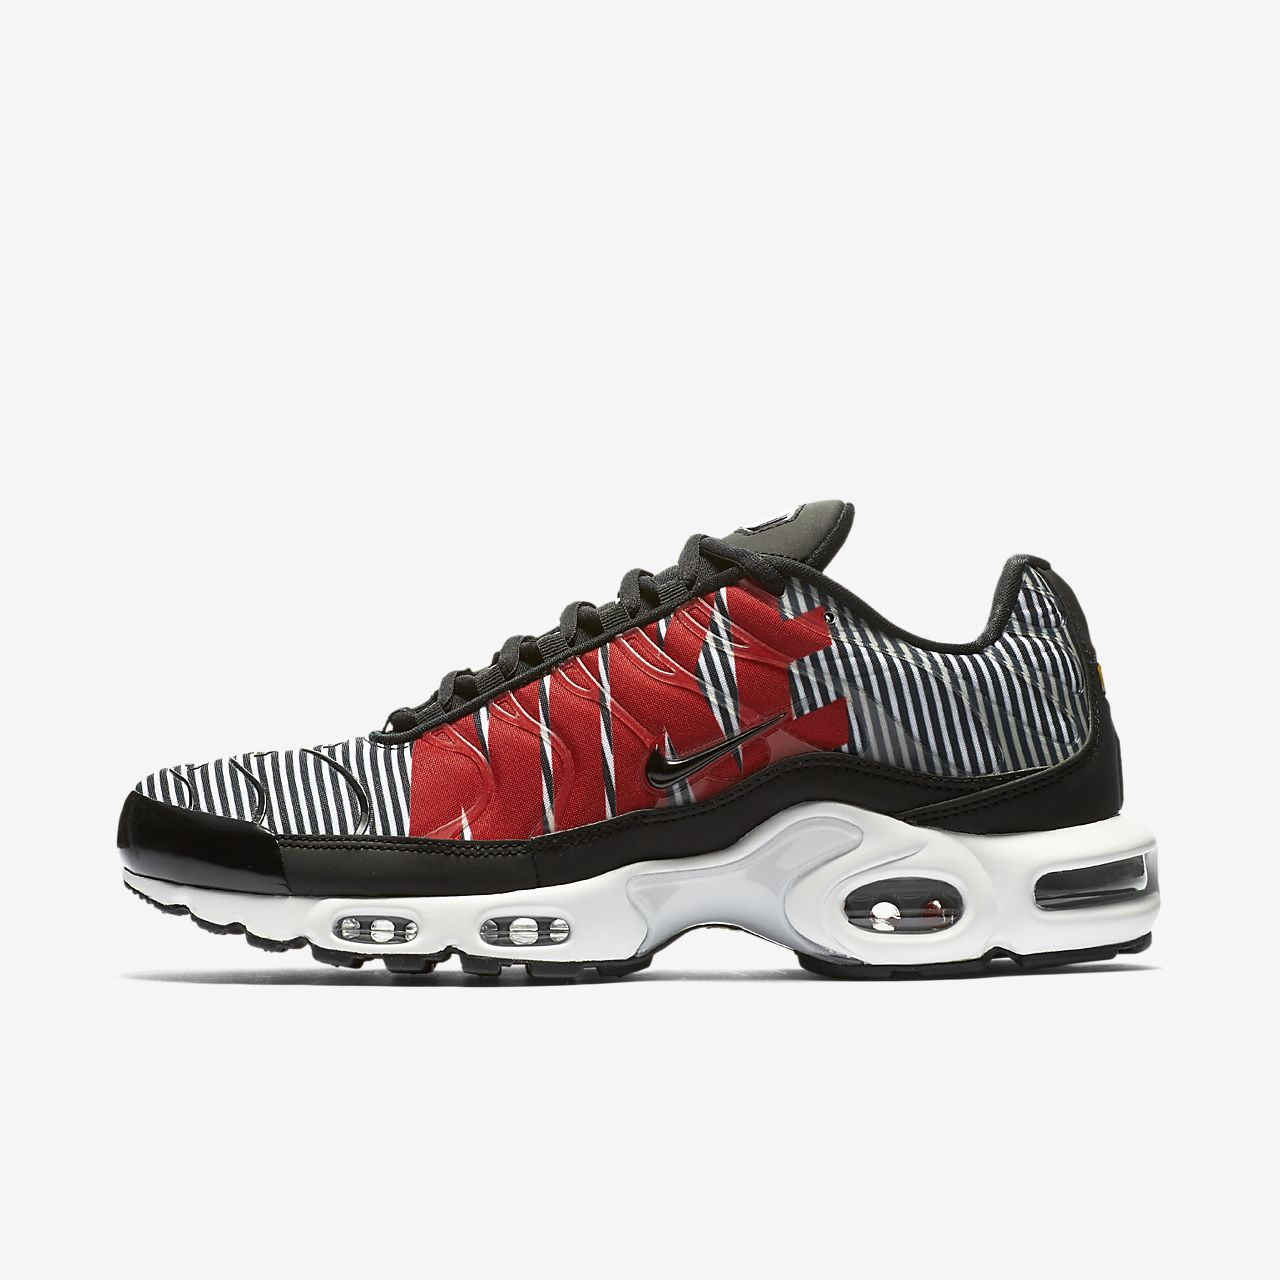 nike airmax plus tn